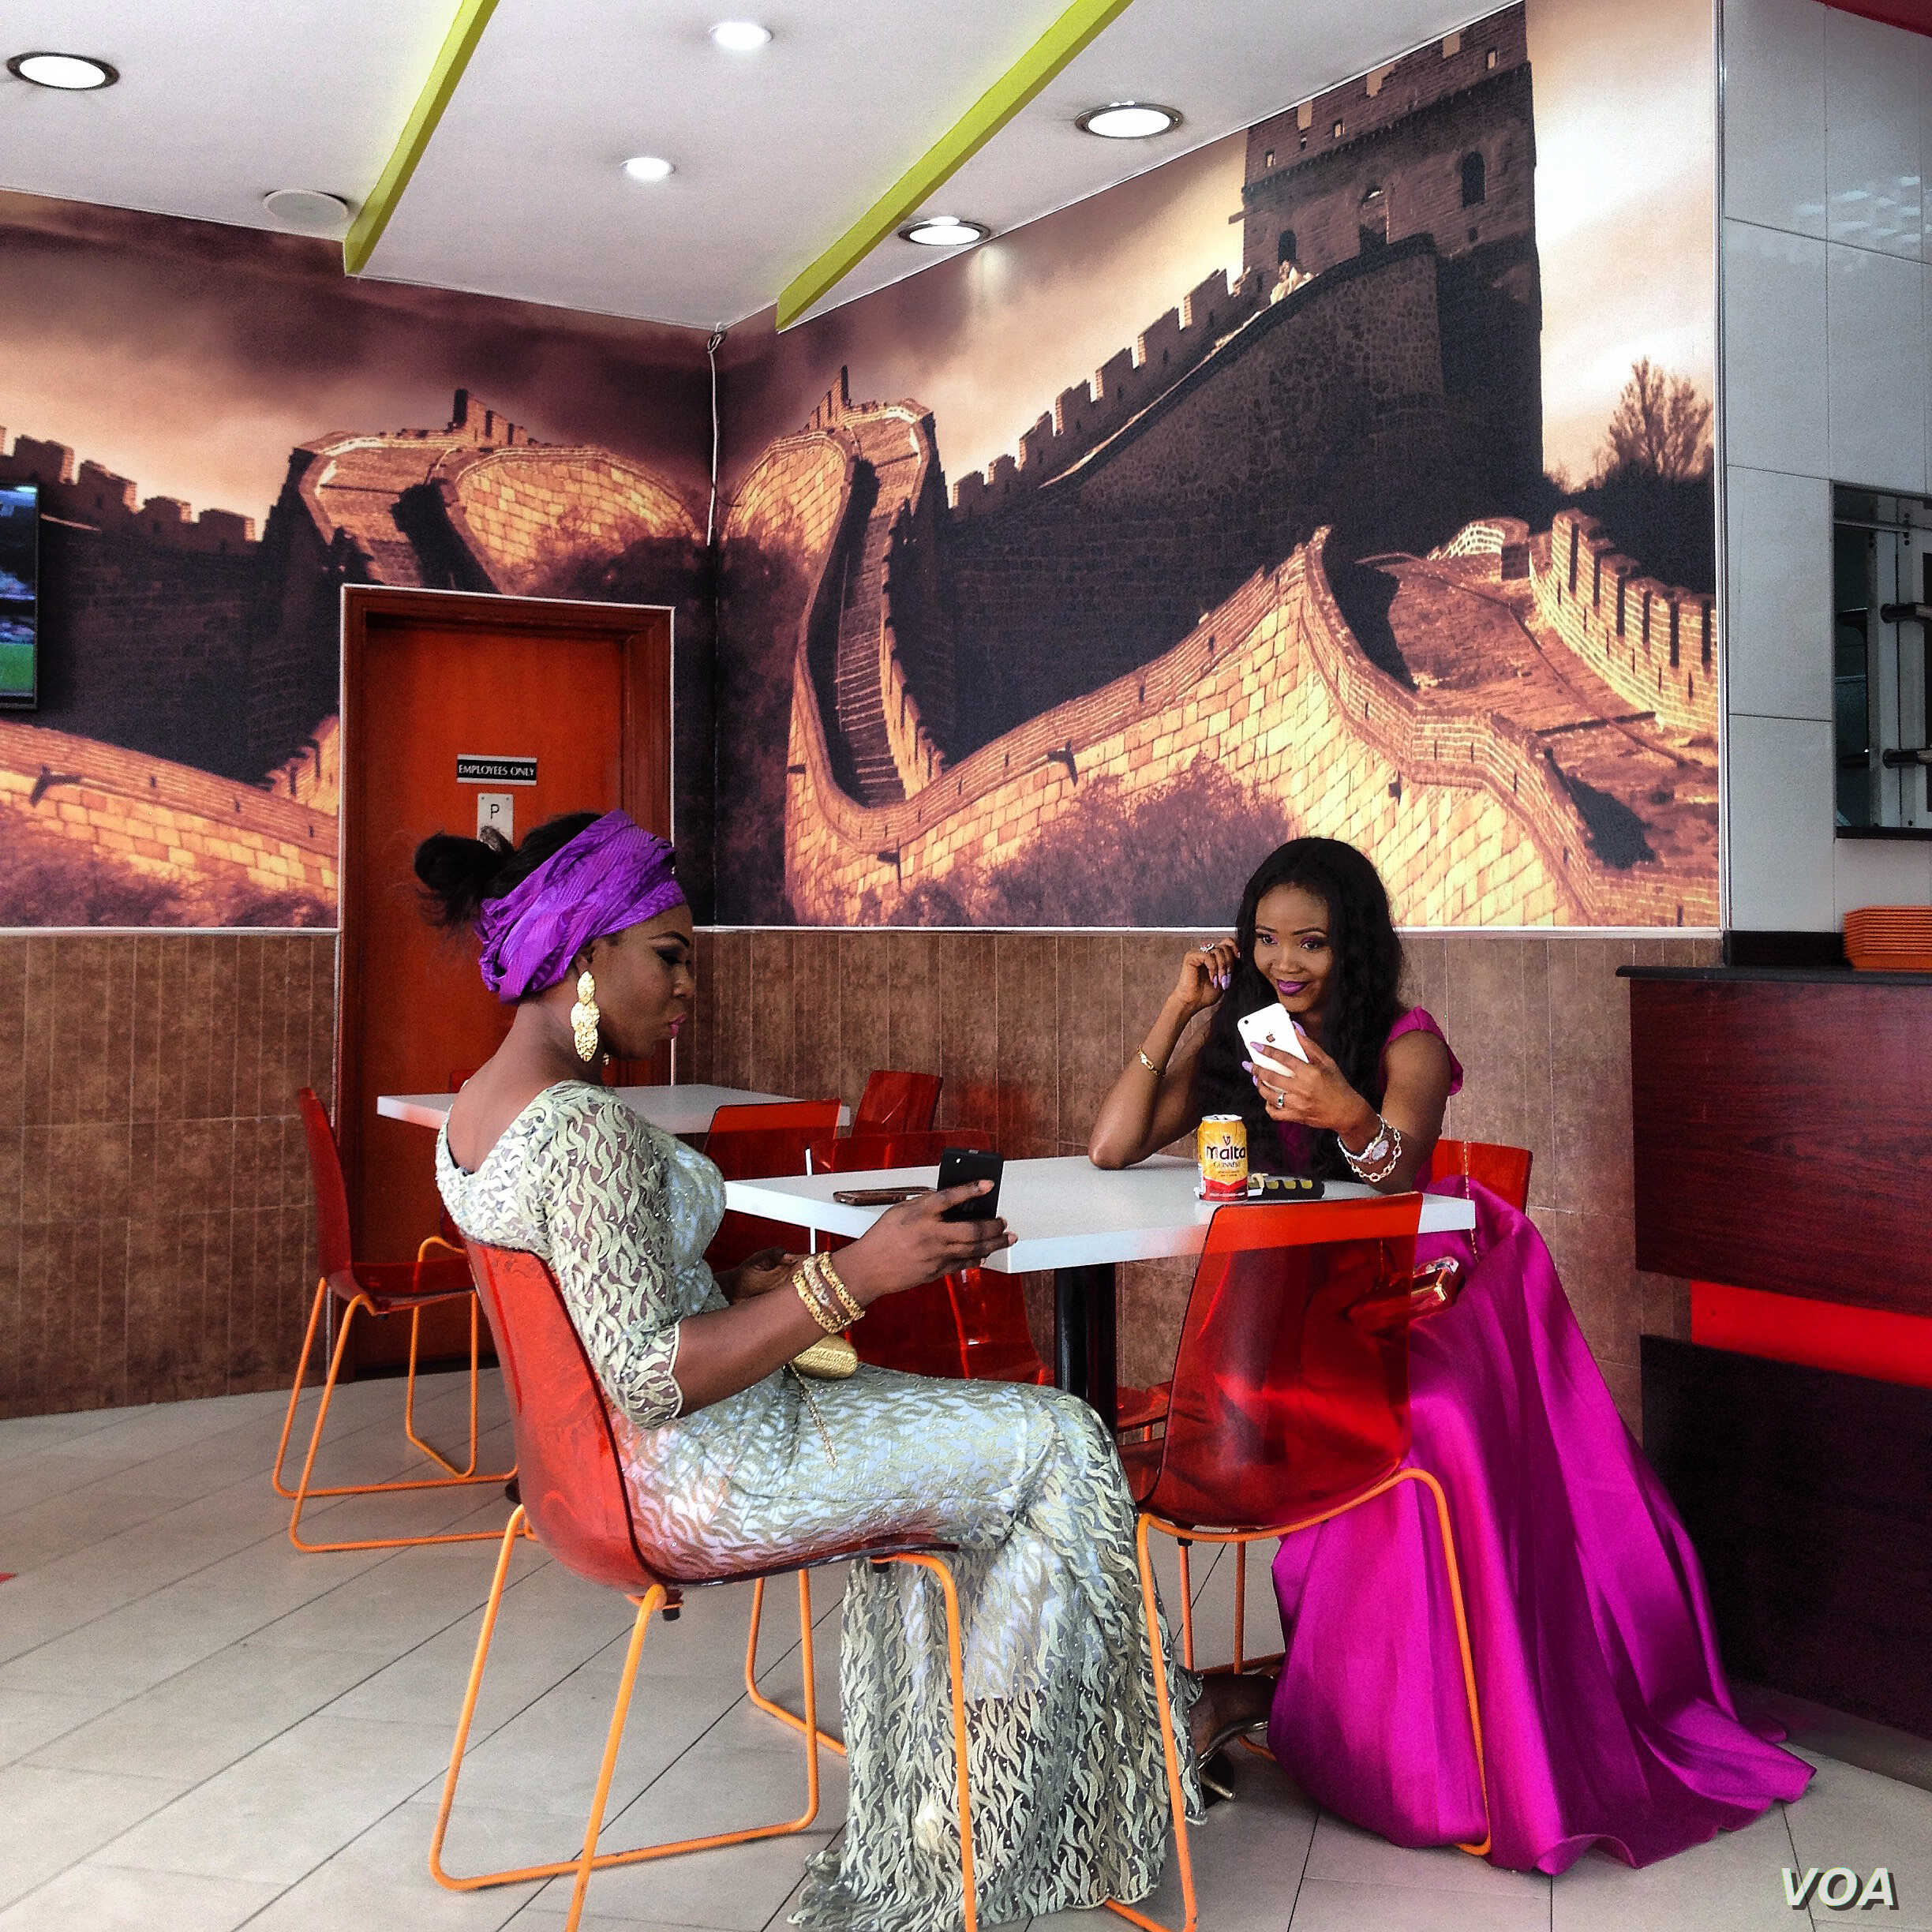 Andrew Esiebo: Two women and their cell phones in Lagos, Nigeria